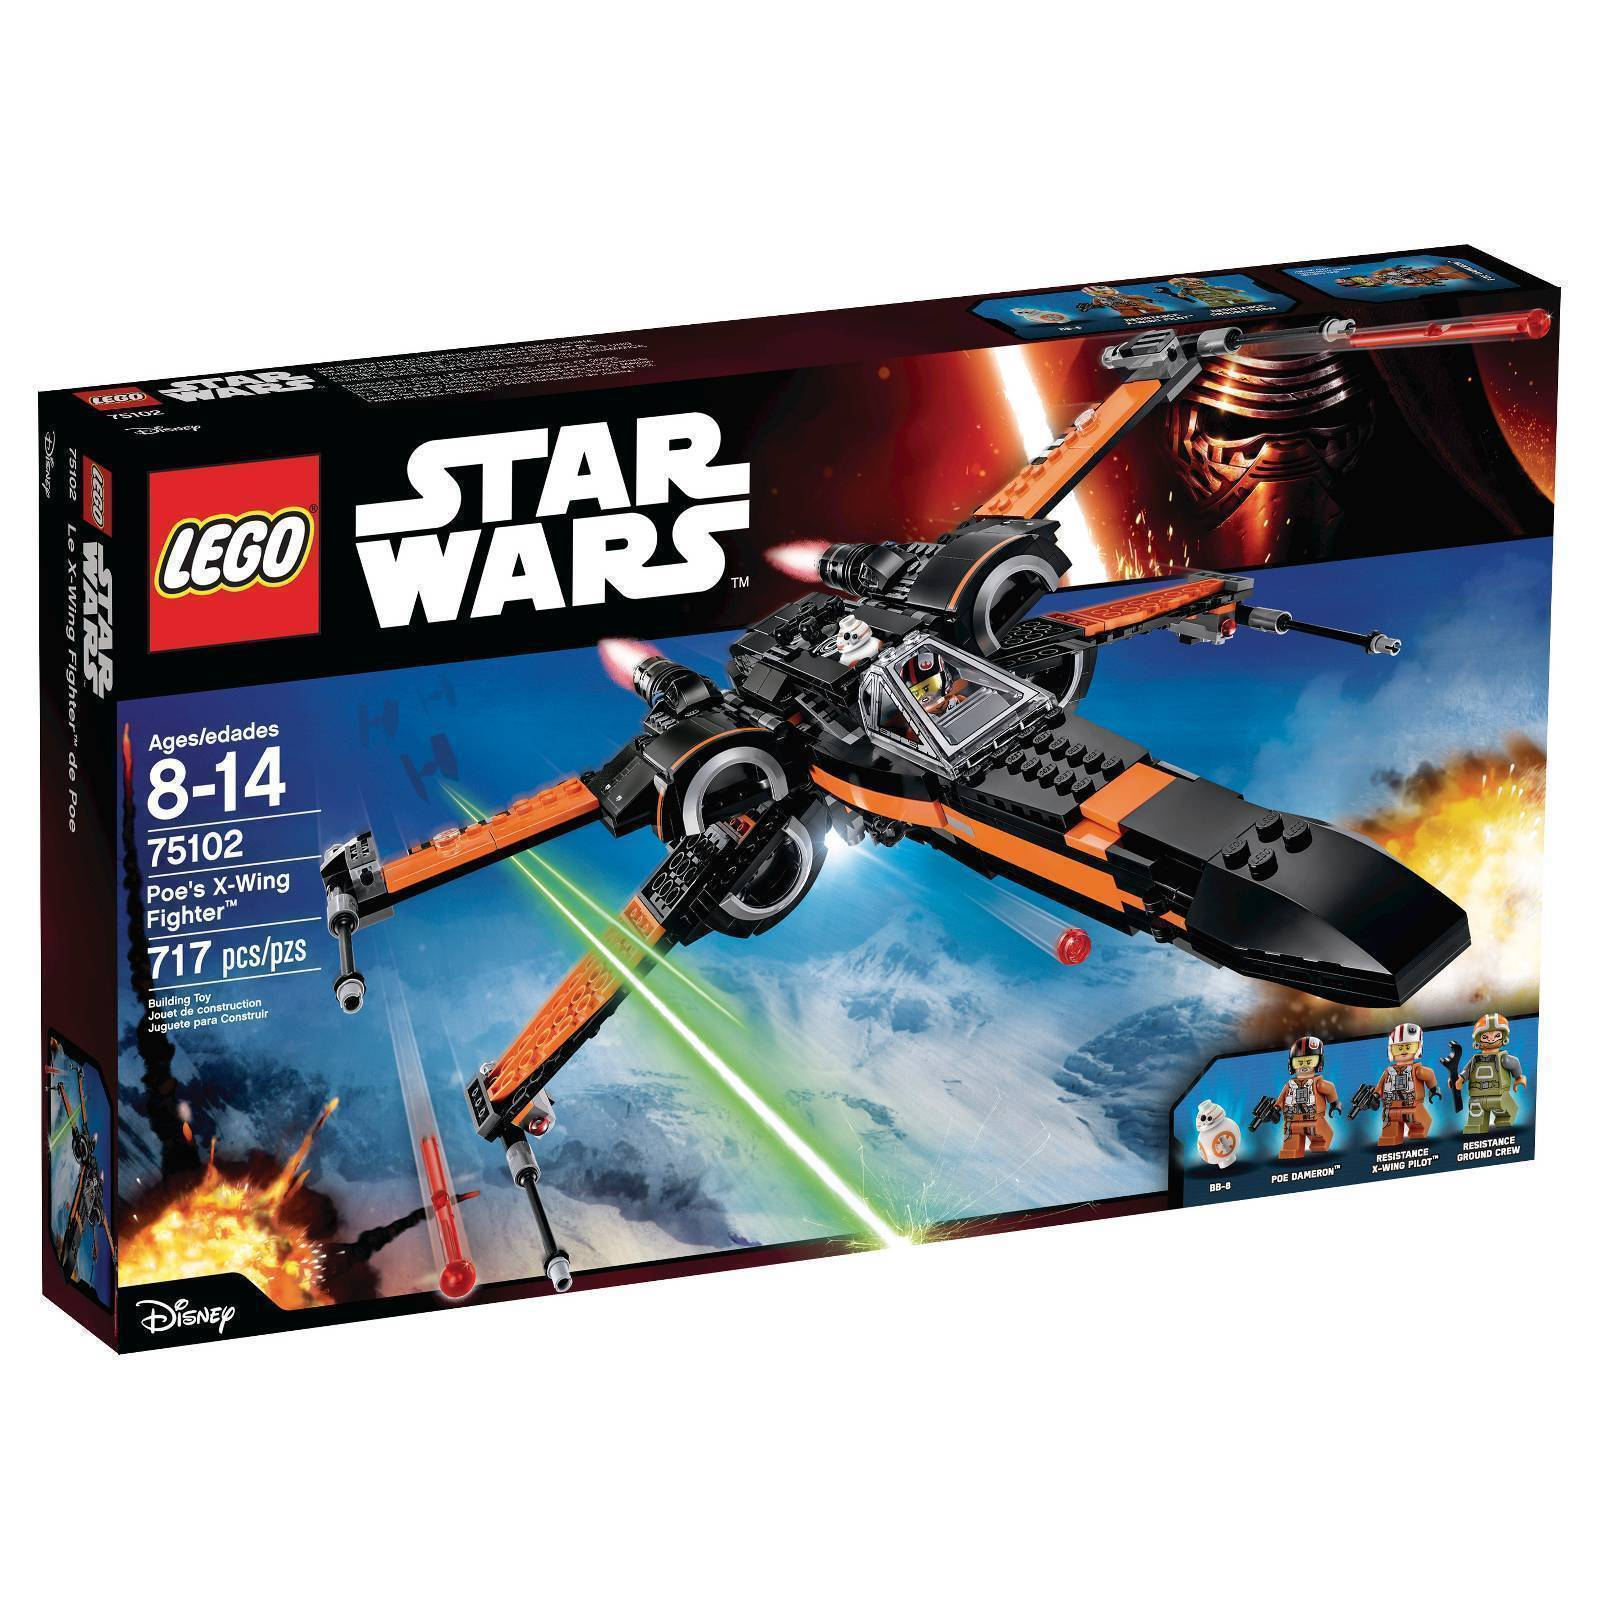 75102 POE'S X-WING FIGHTER lego set NEW star wars legos FORCE AWAKENS bb-8